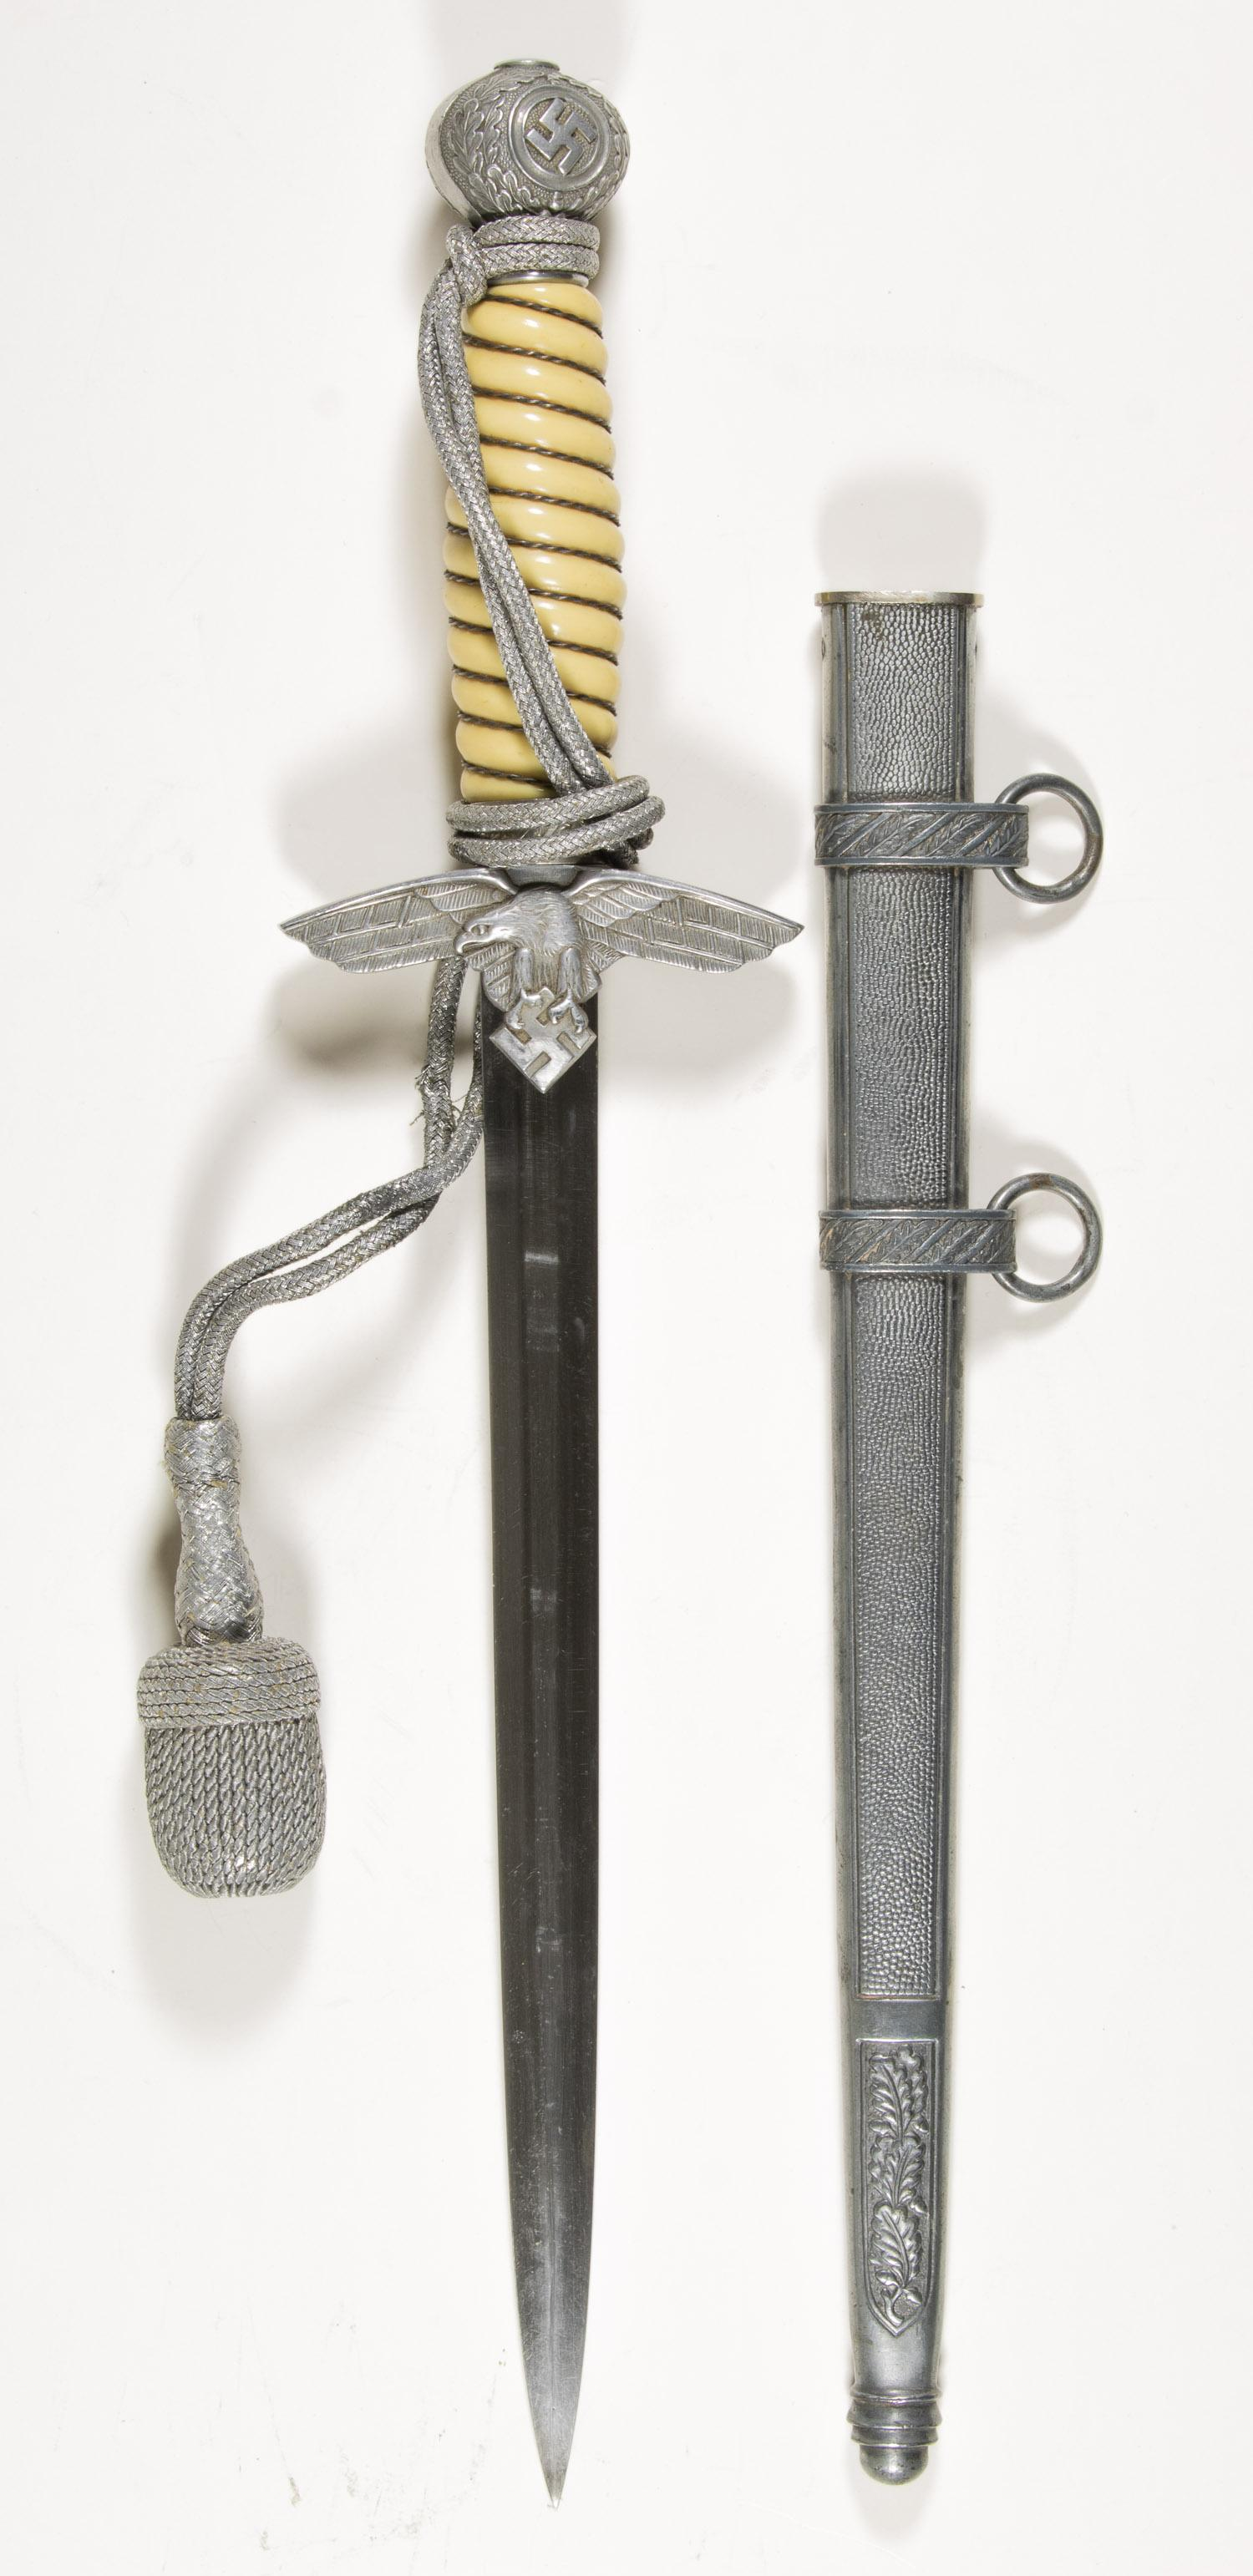 LUFTWAFFE 2ND MODEL DAGGER WITH SCABBARD BY TIGER